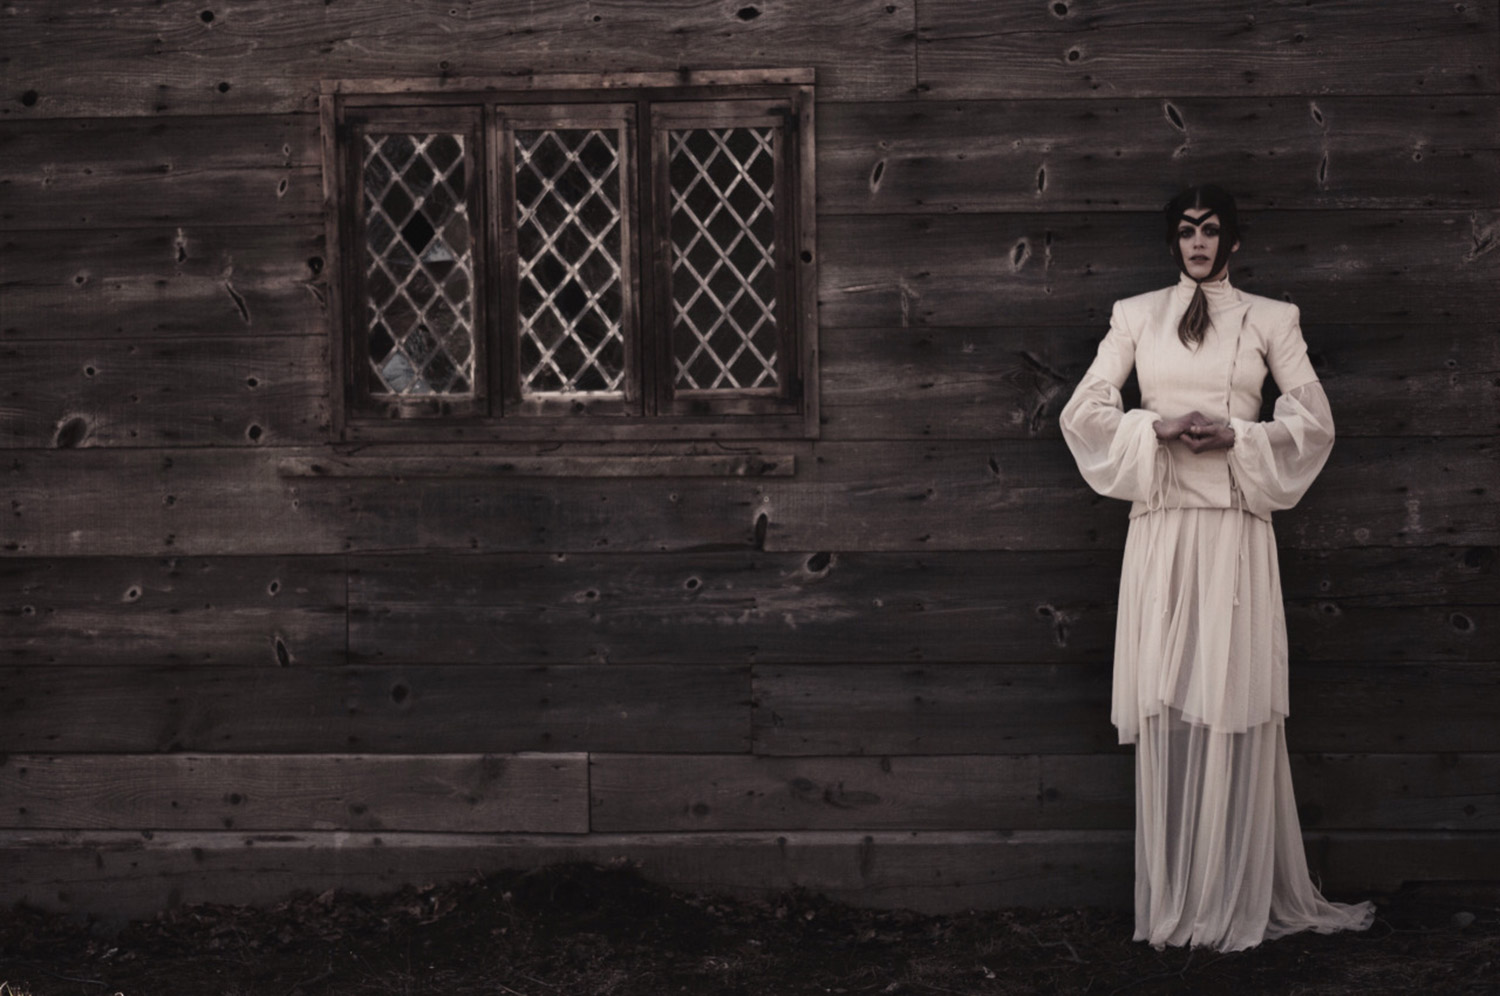 Hogan Mclaughlin - Upon the Heath of Bedlam, photographer Bill Crisafi, standing woman in white dress